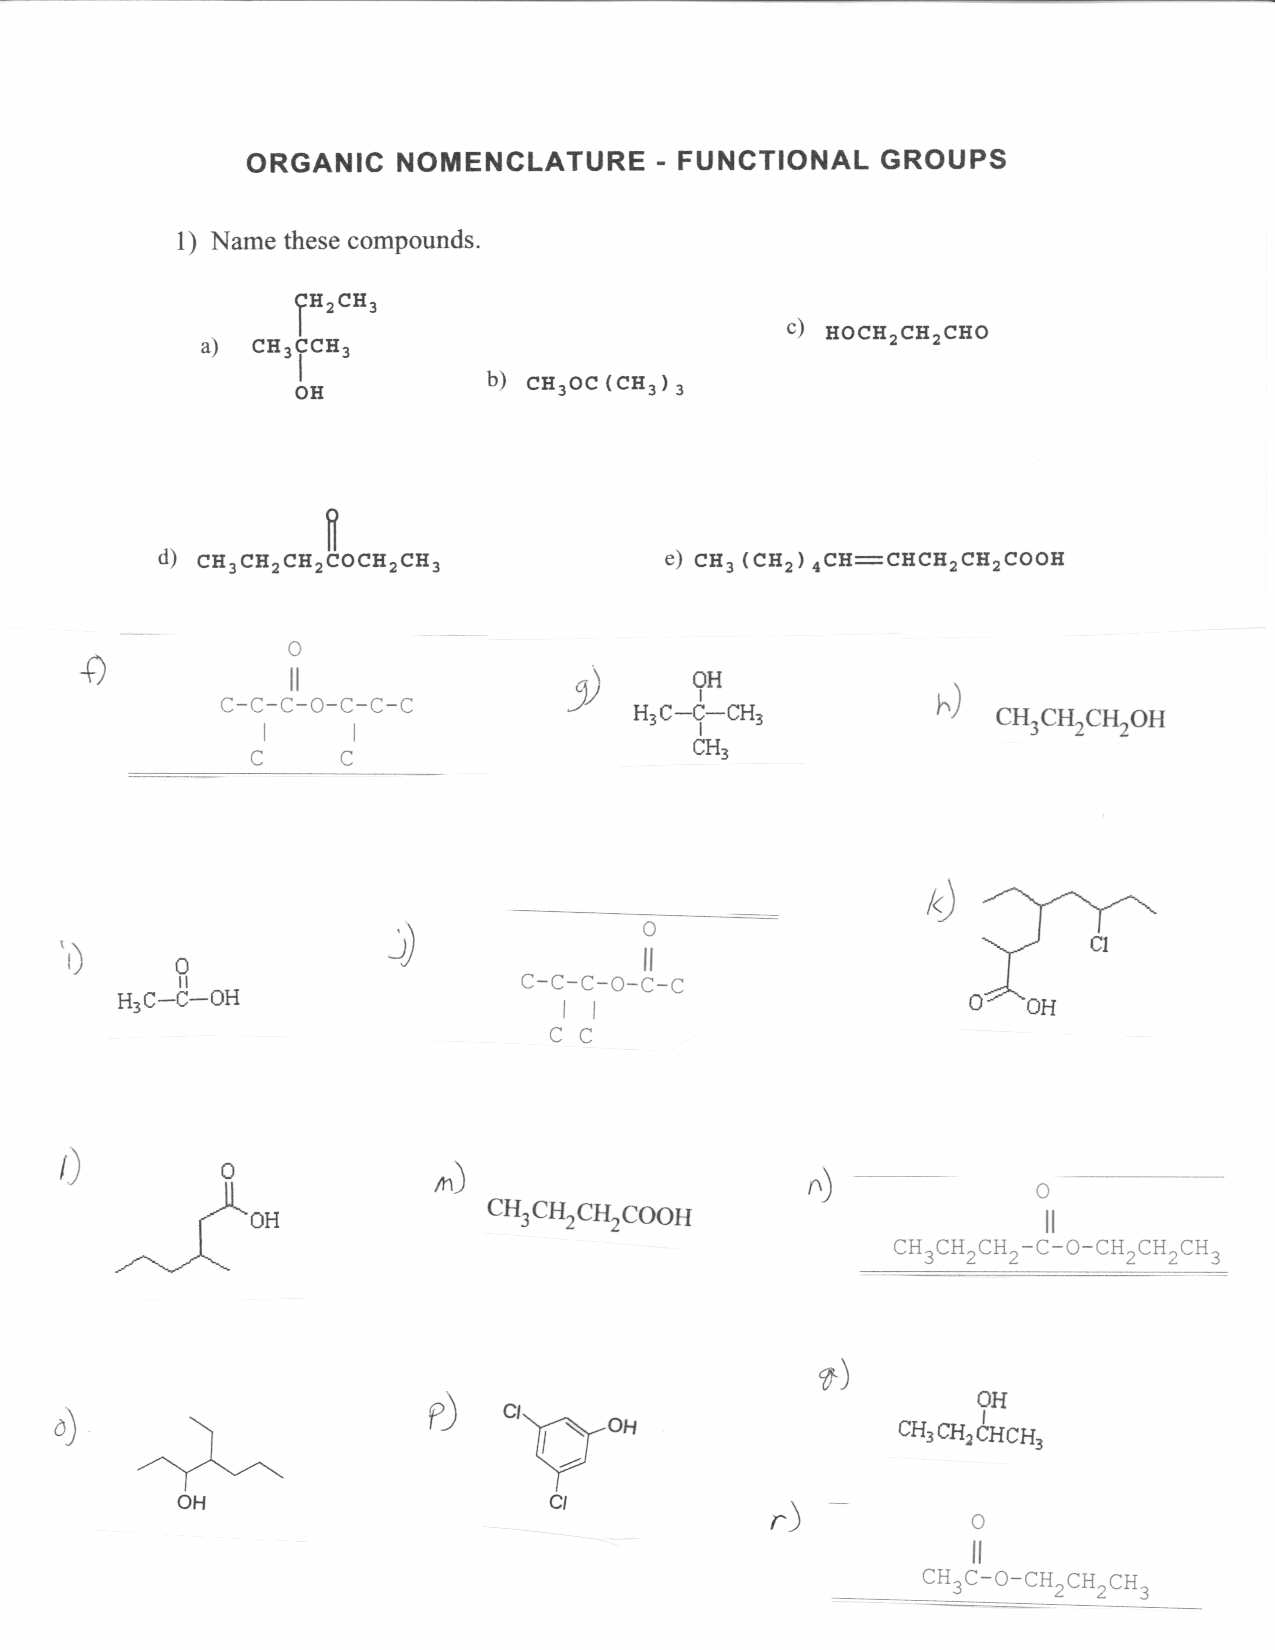 Worksheets Organic Chemistry Worksheet With Answers Pdf worksheets chemistry nomenclature worksheet laurenpsyk free ap page hydrocarbon practice word acrobat and answers jpg organic answers